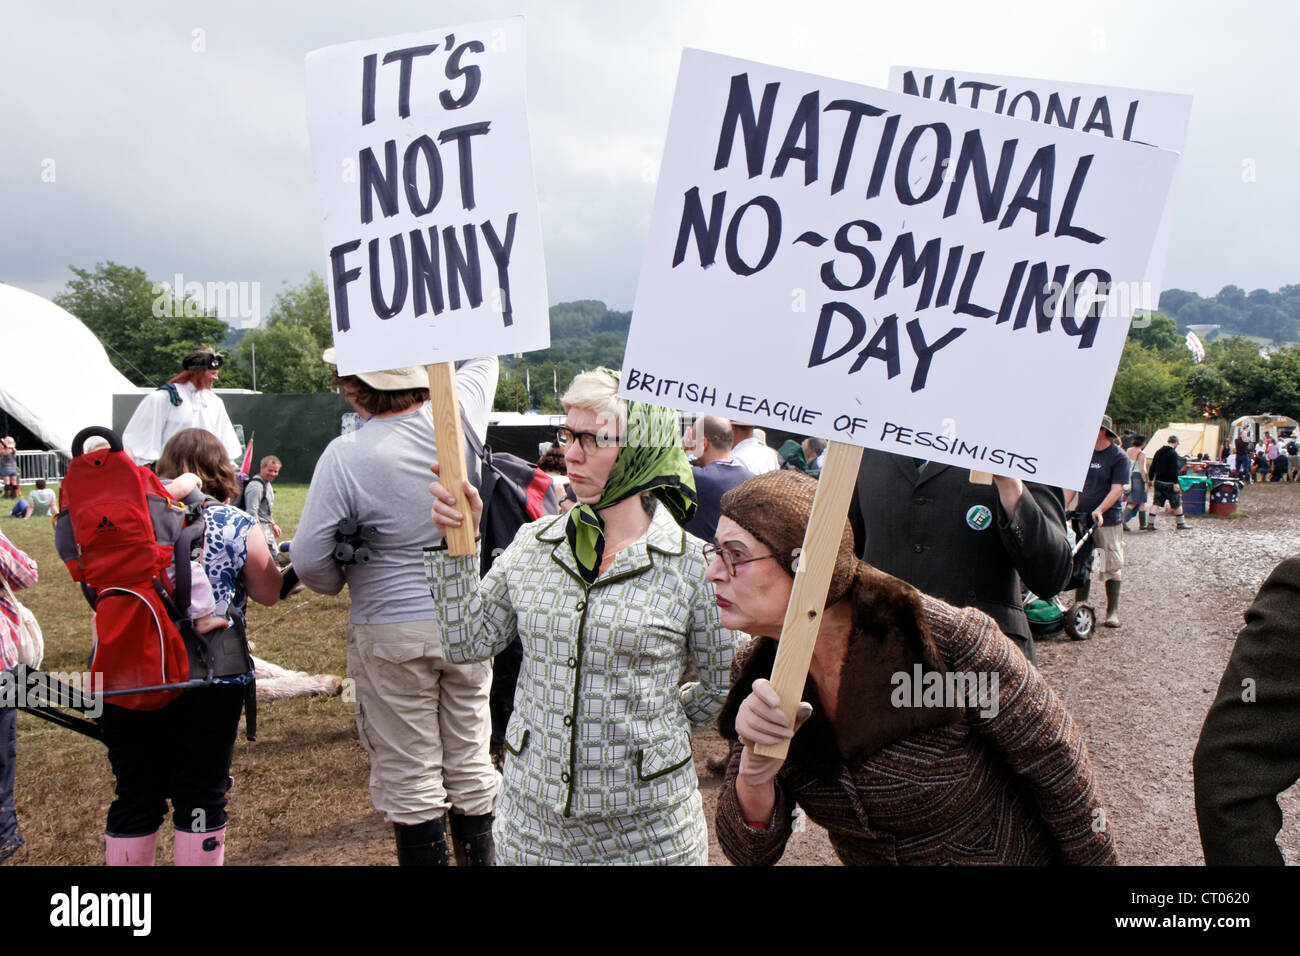 Grumpy Glastonbury Festival performance artists demonstrate for a National No-Smiling Day - Stock Image